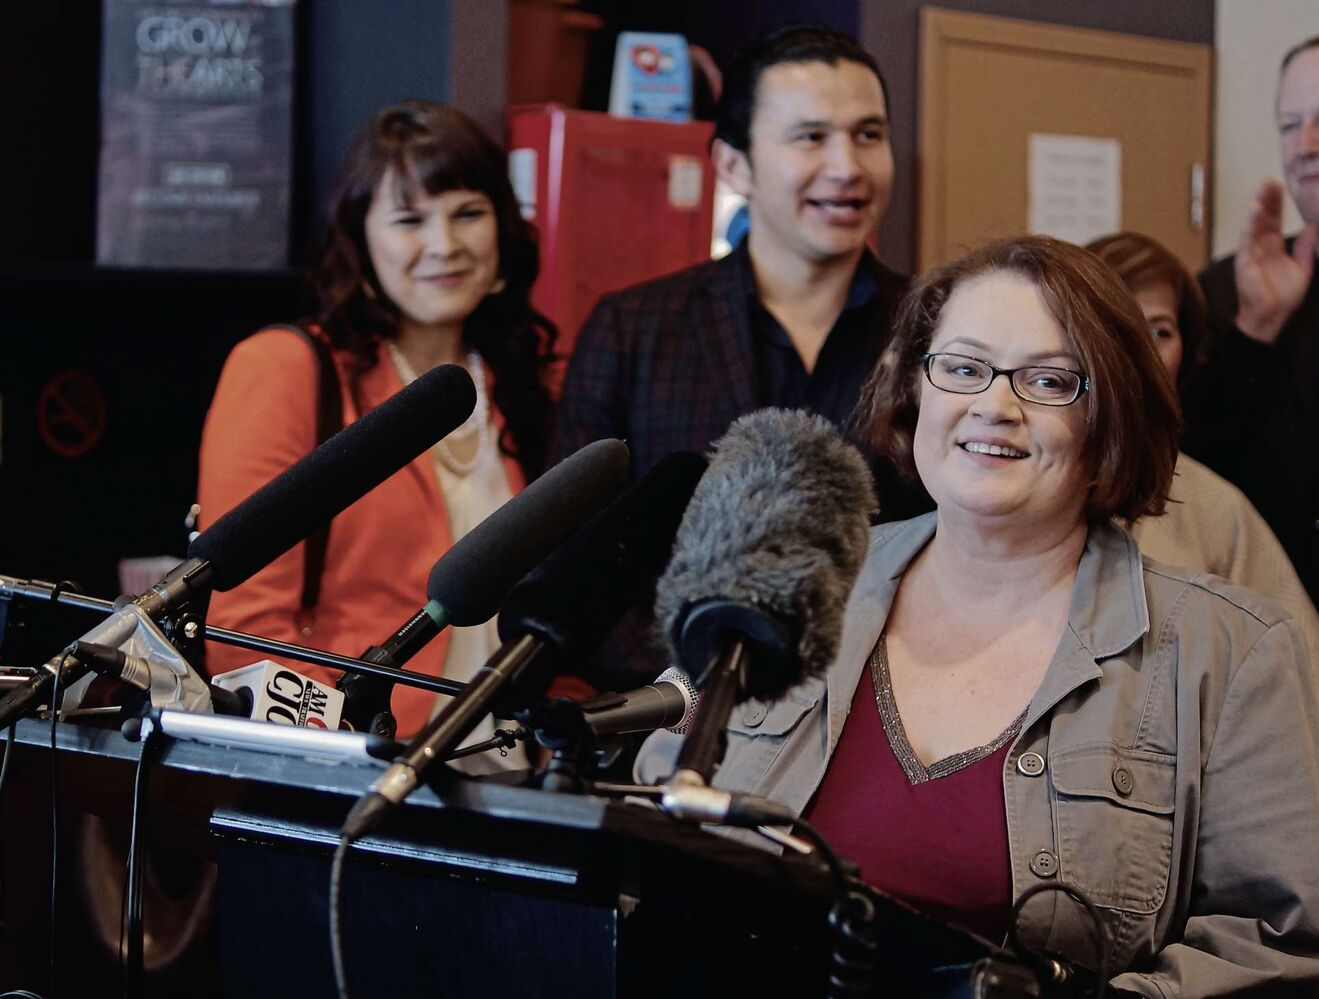 Jennifer Howard, foreground, announced she would not seek re-election in Fort Rouge at the end of January 2016. Wab Kinew, background, successfully ran for the NDP in Fort Rouge during the provincial election. (Danielle Da Silva - Sou'wester)